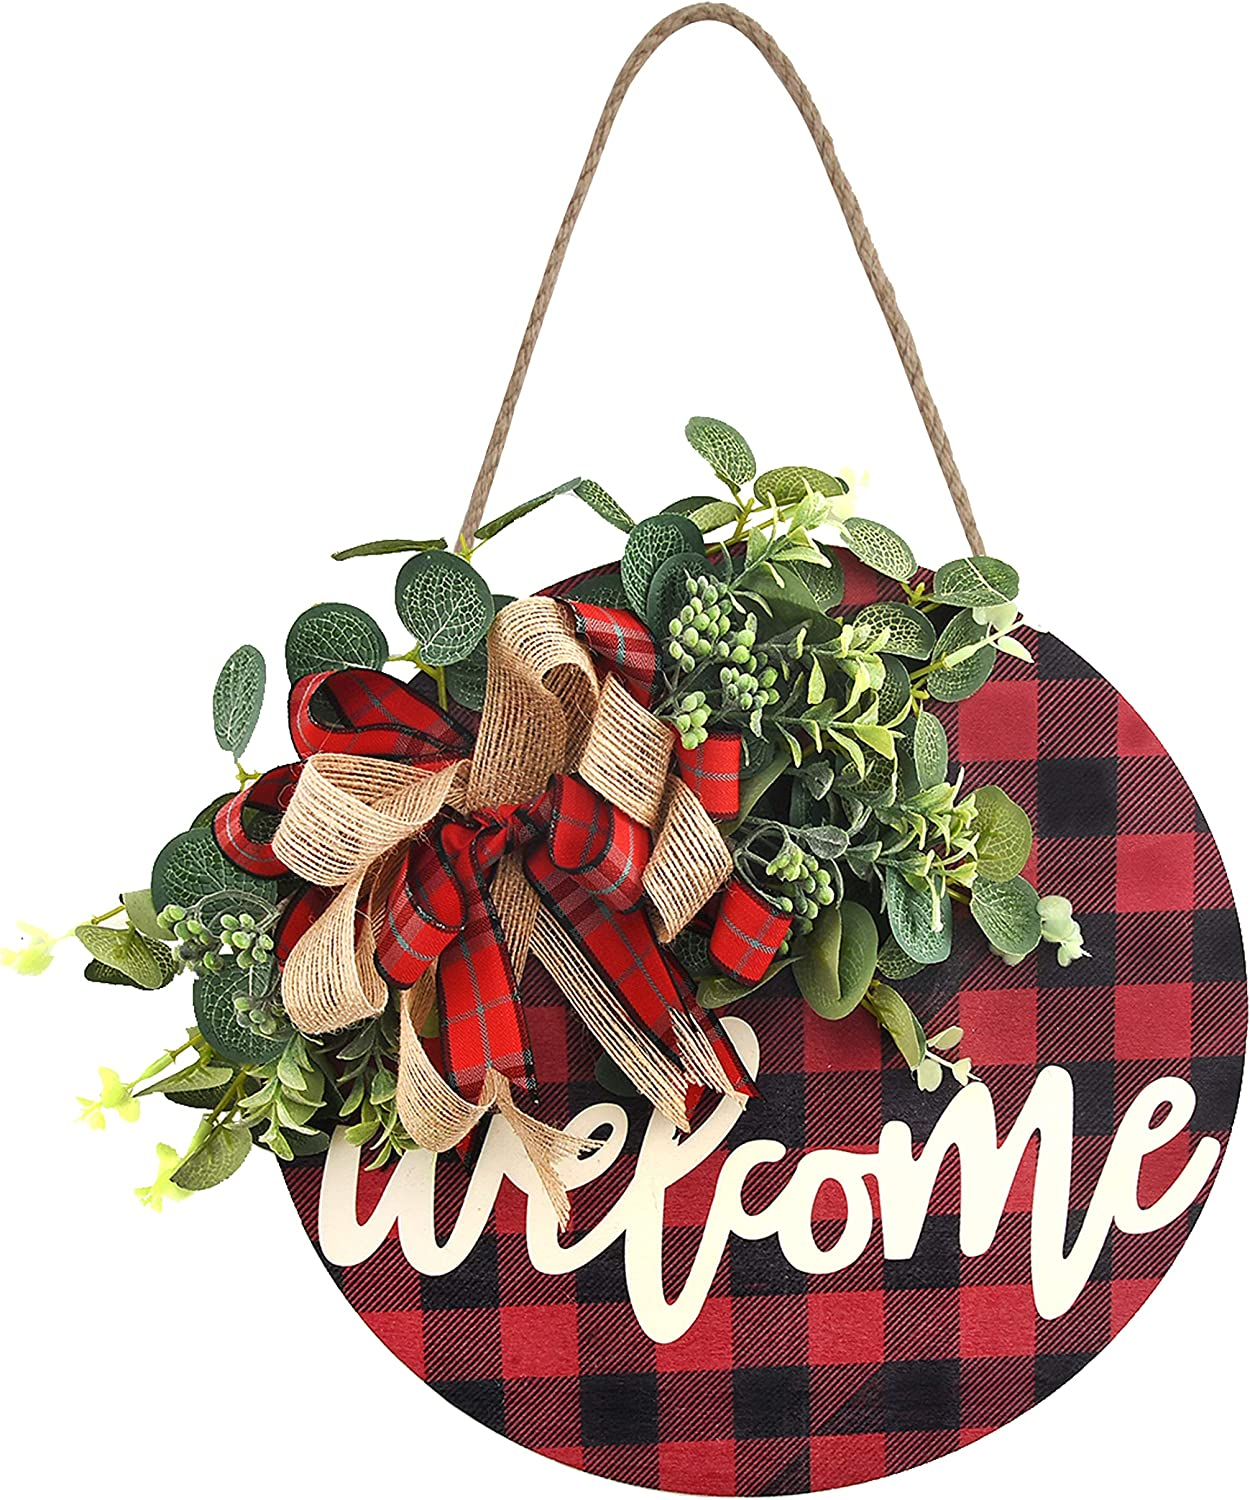 Christmas Welcome Sign Wooden Hanging Sign Buffalo Plaid Decor Front Porch Decorations for Christmas,Restaurant, Home, Outdoor with LED String Line (Welcome-red)